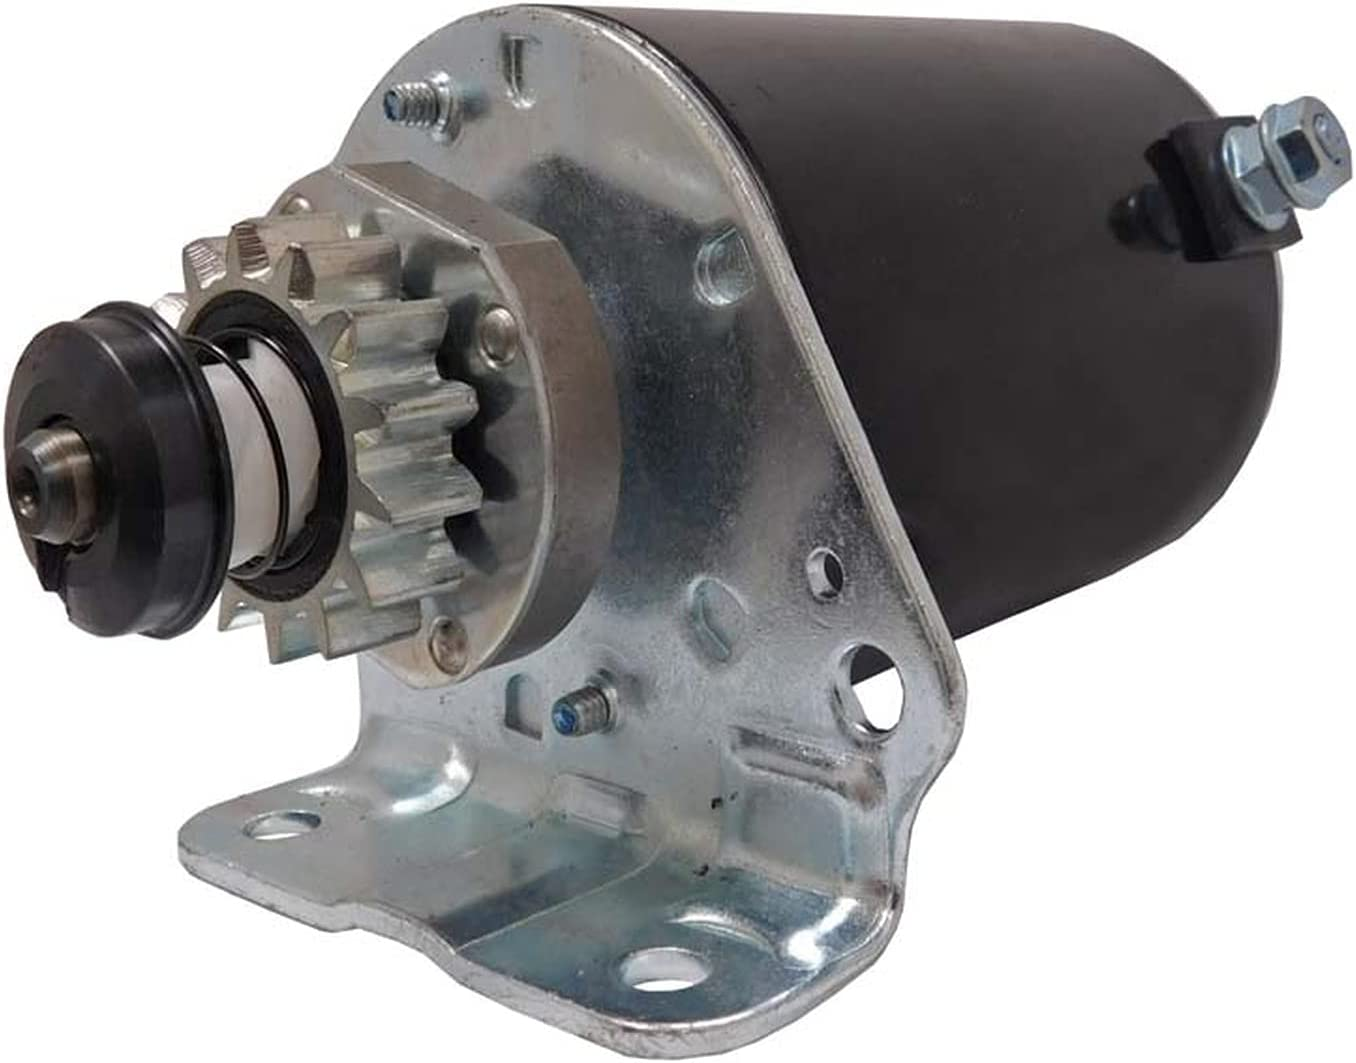 New Free Shipping Starter Attention brand Replacement For Briggs Engines Air Cooled Stratton